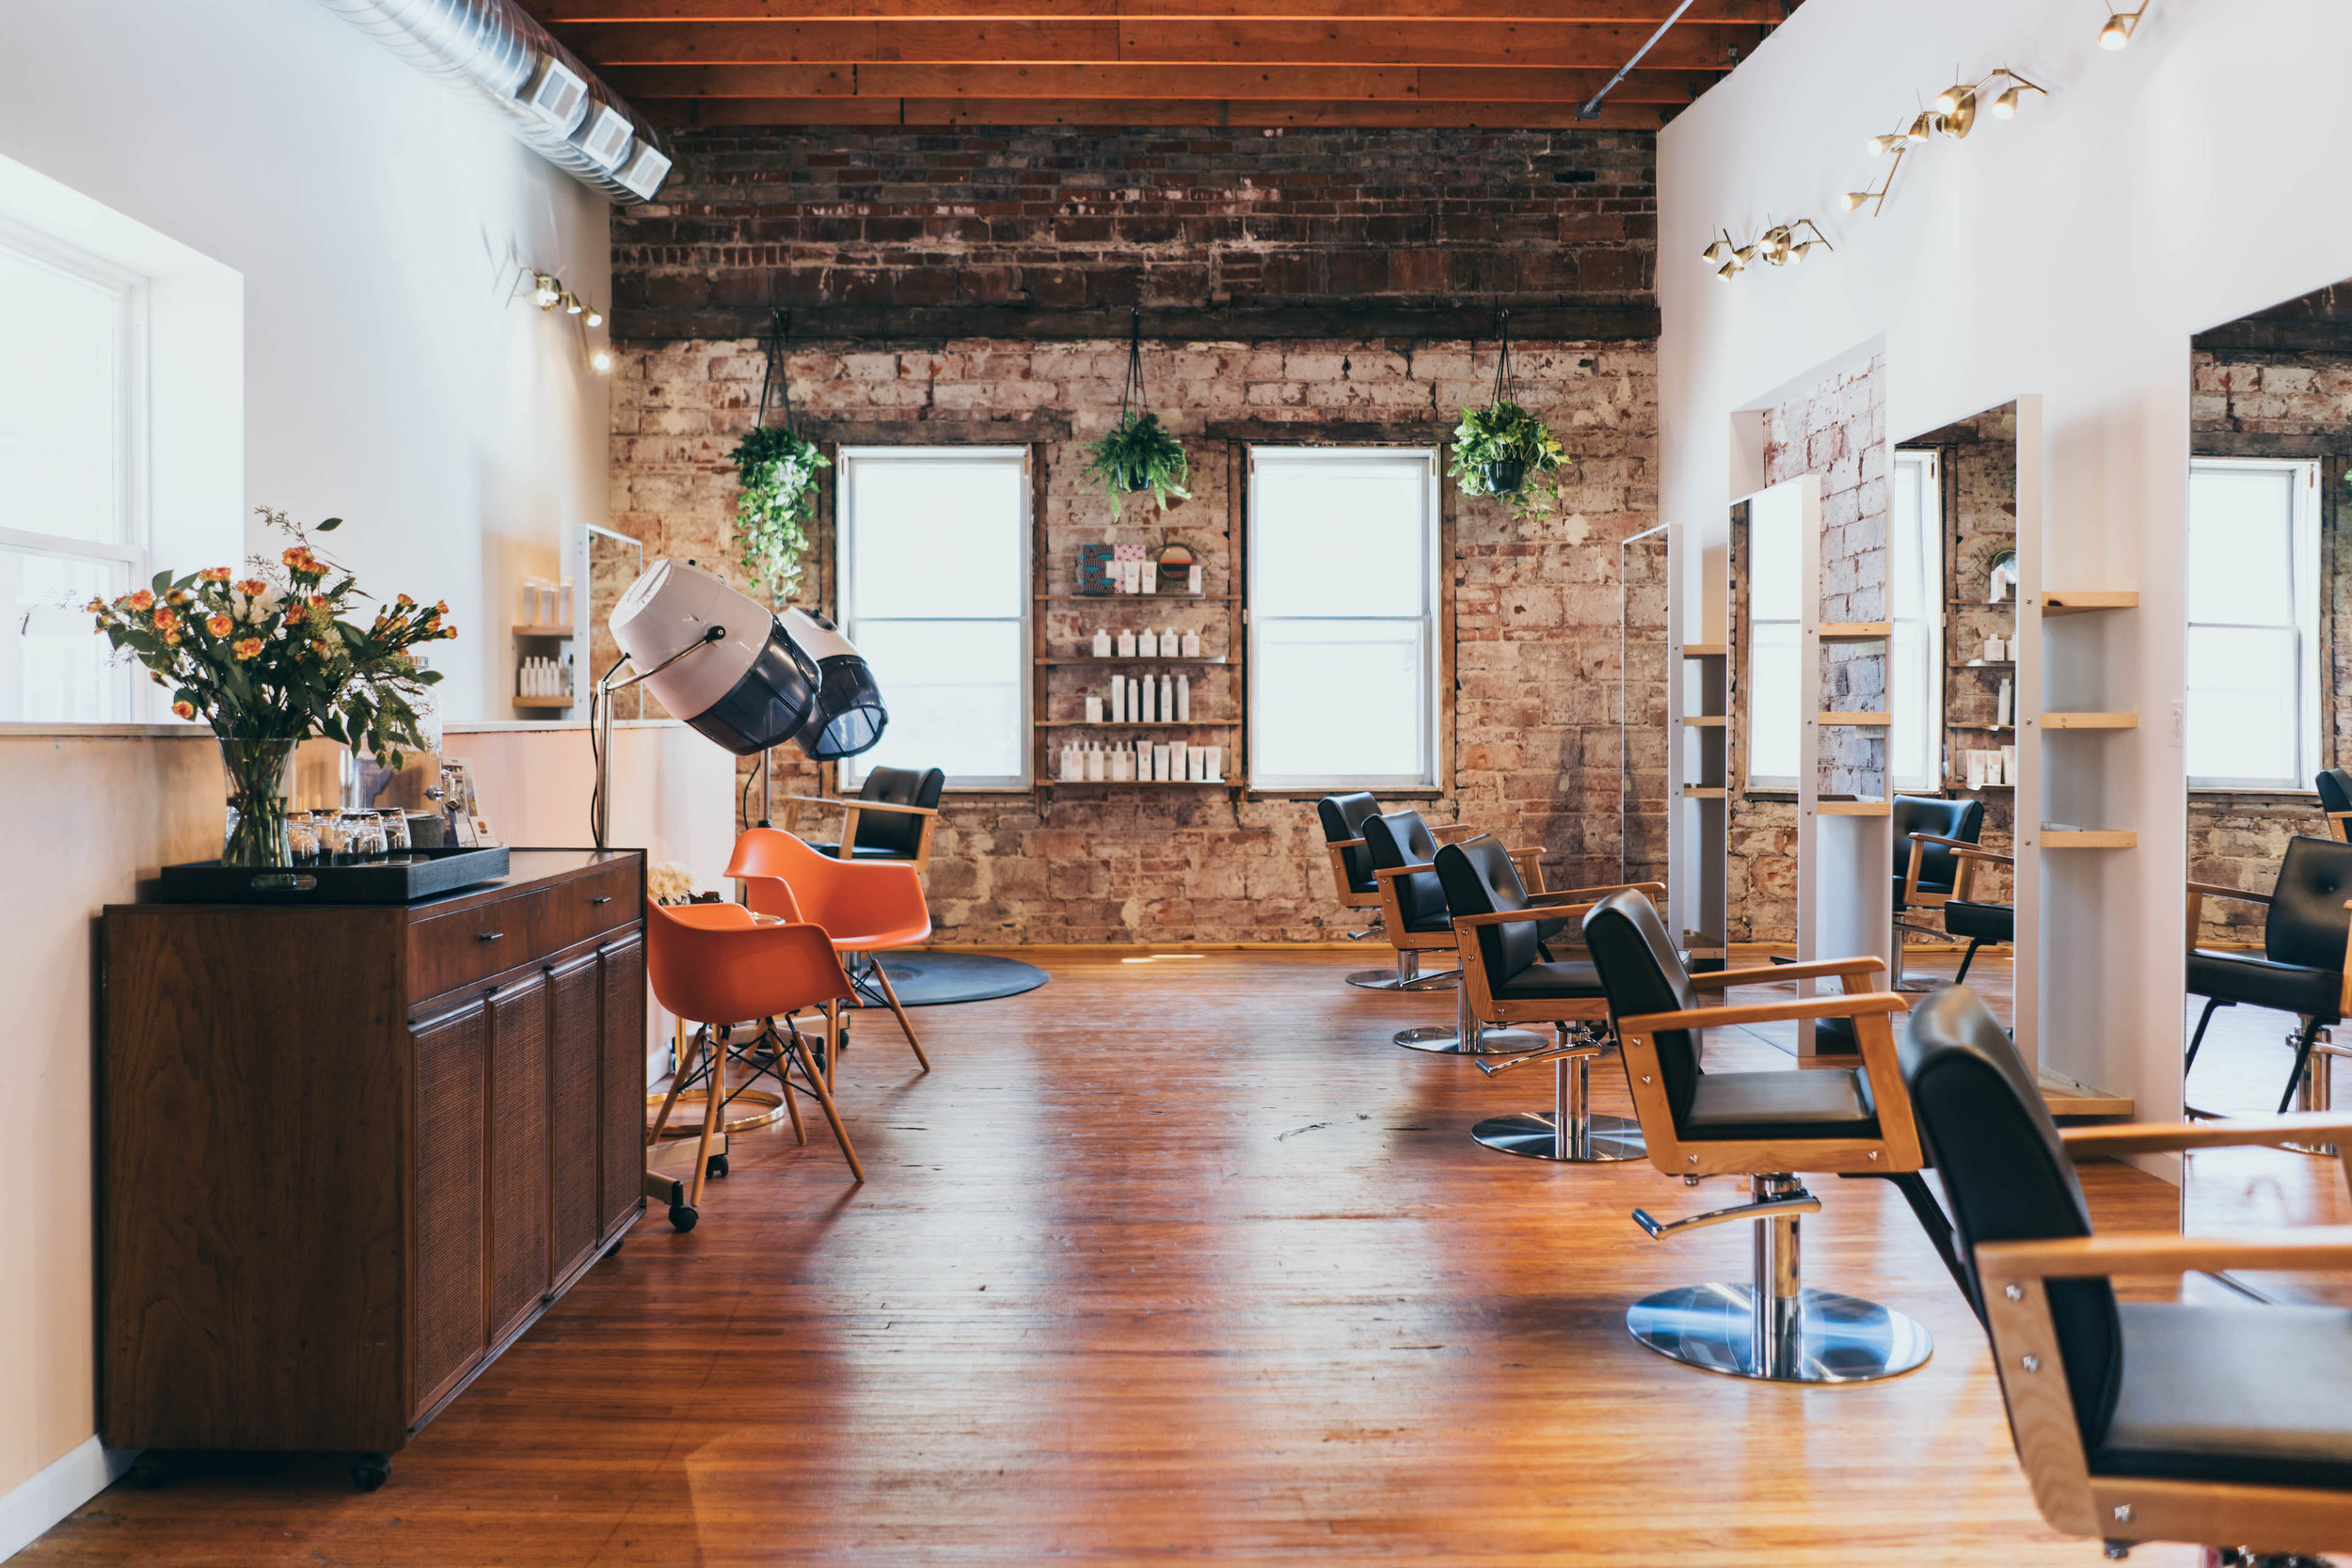 Photo by Nicolette Wagner Unbound Photography & Bringing the Modern Hair Salon Back to its Roots| Downtown Lincoln NE